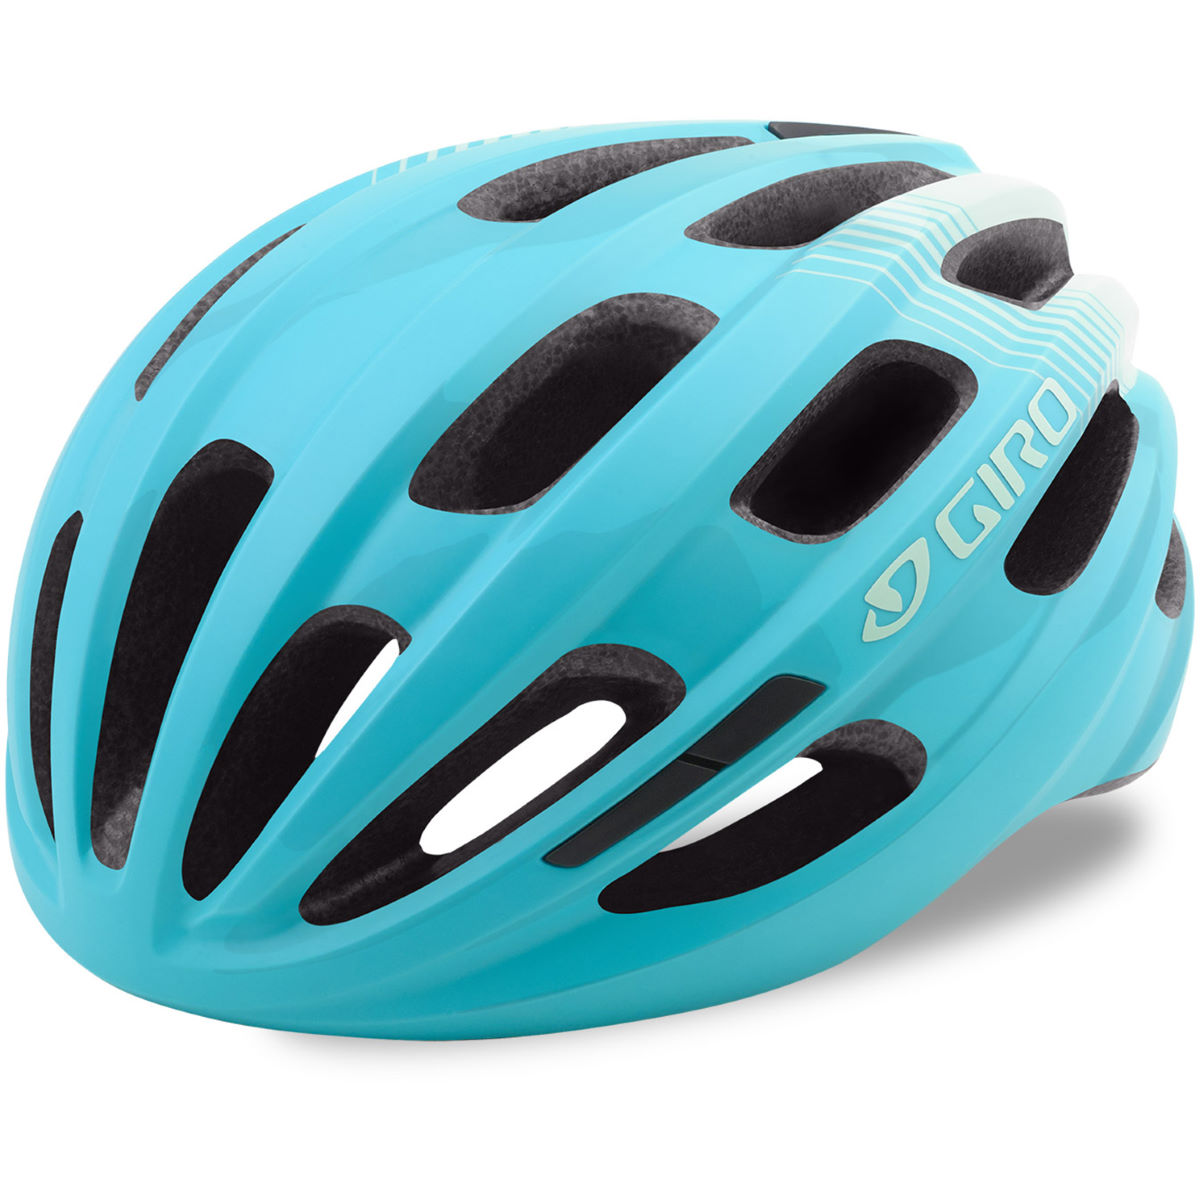 Turning Isode Helmet - Casques Route